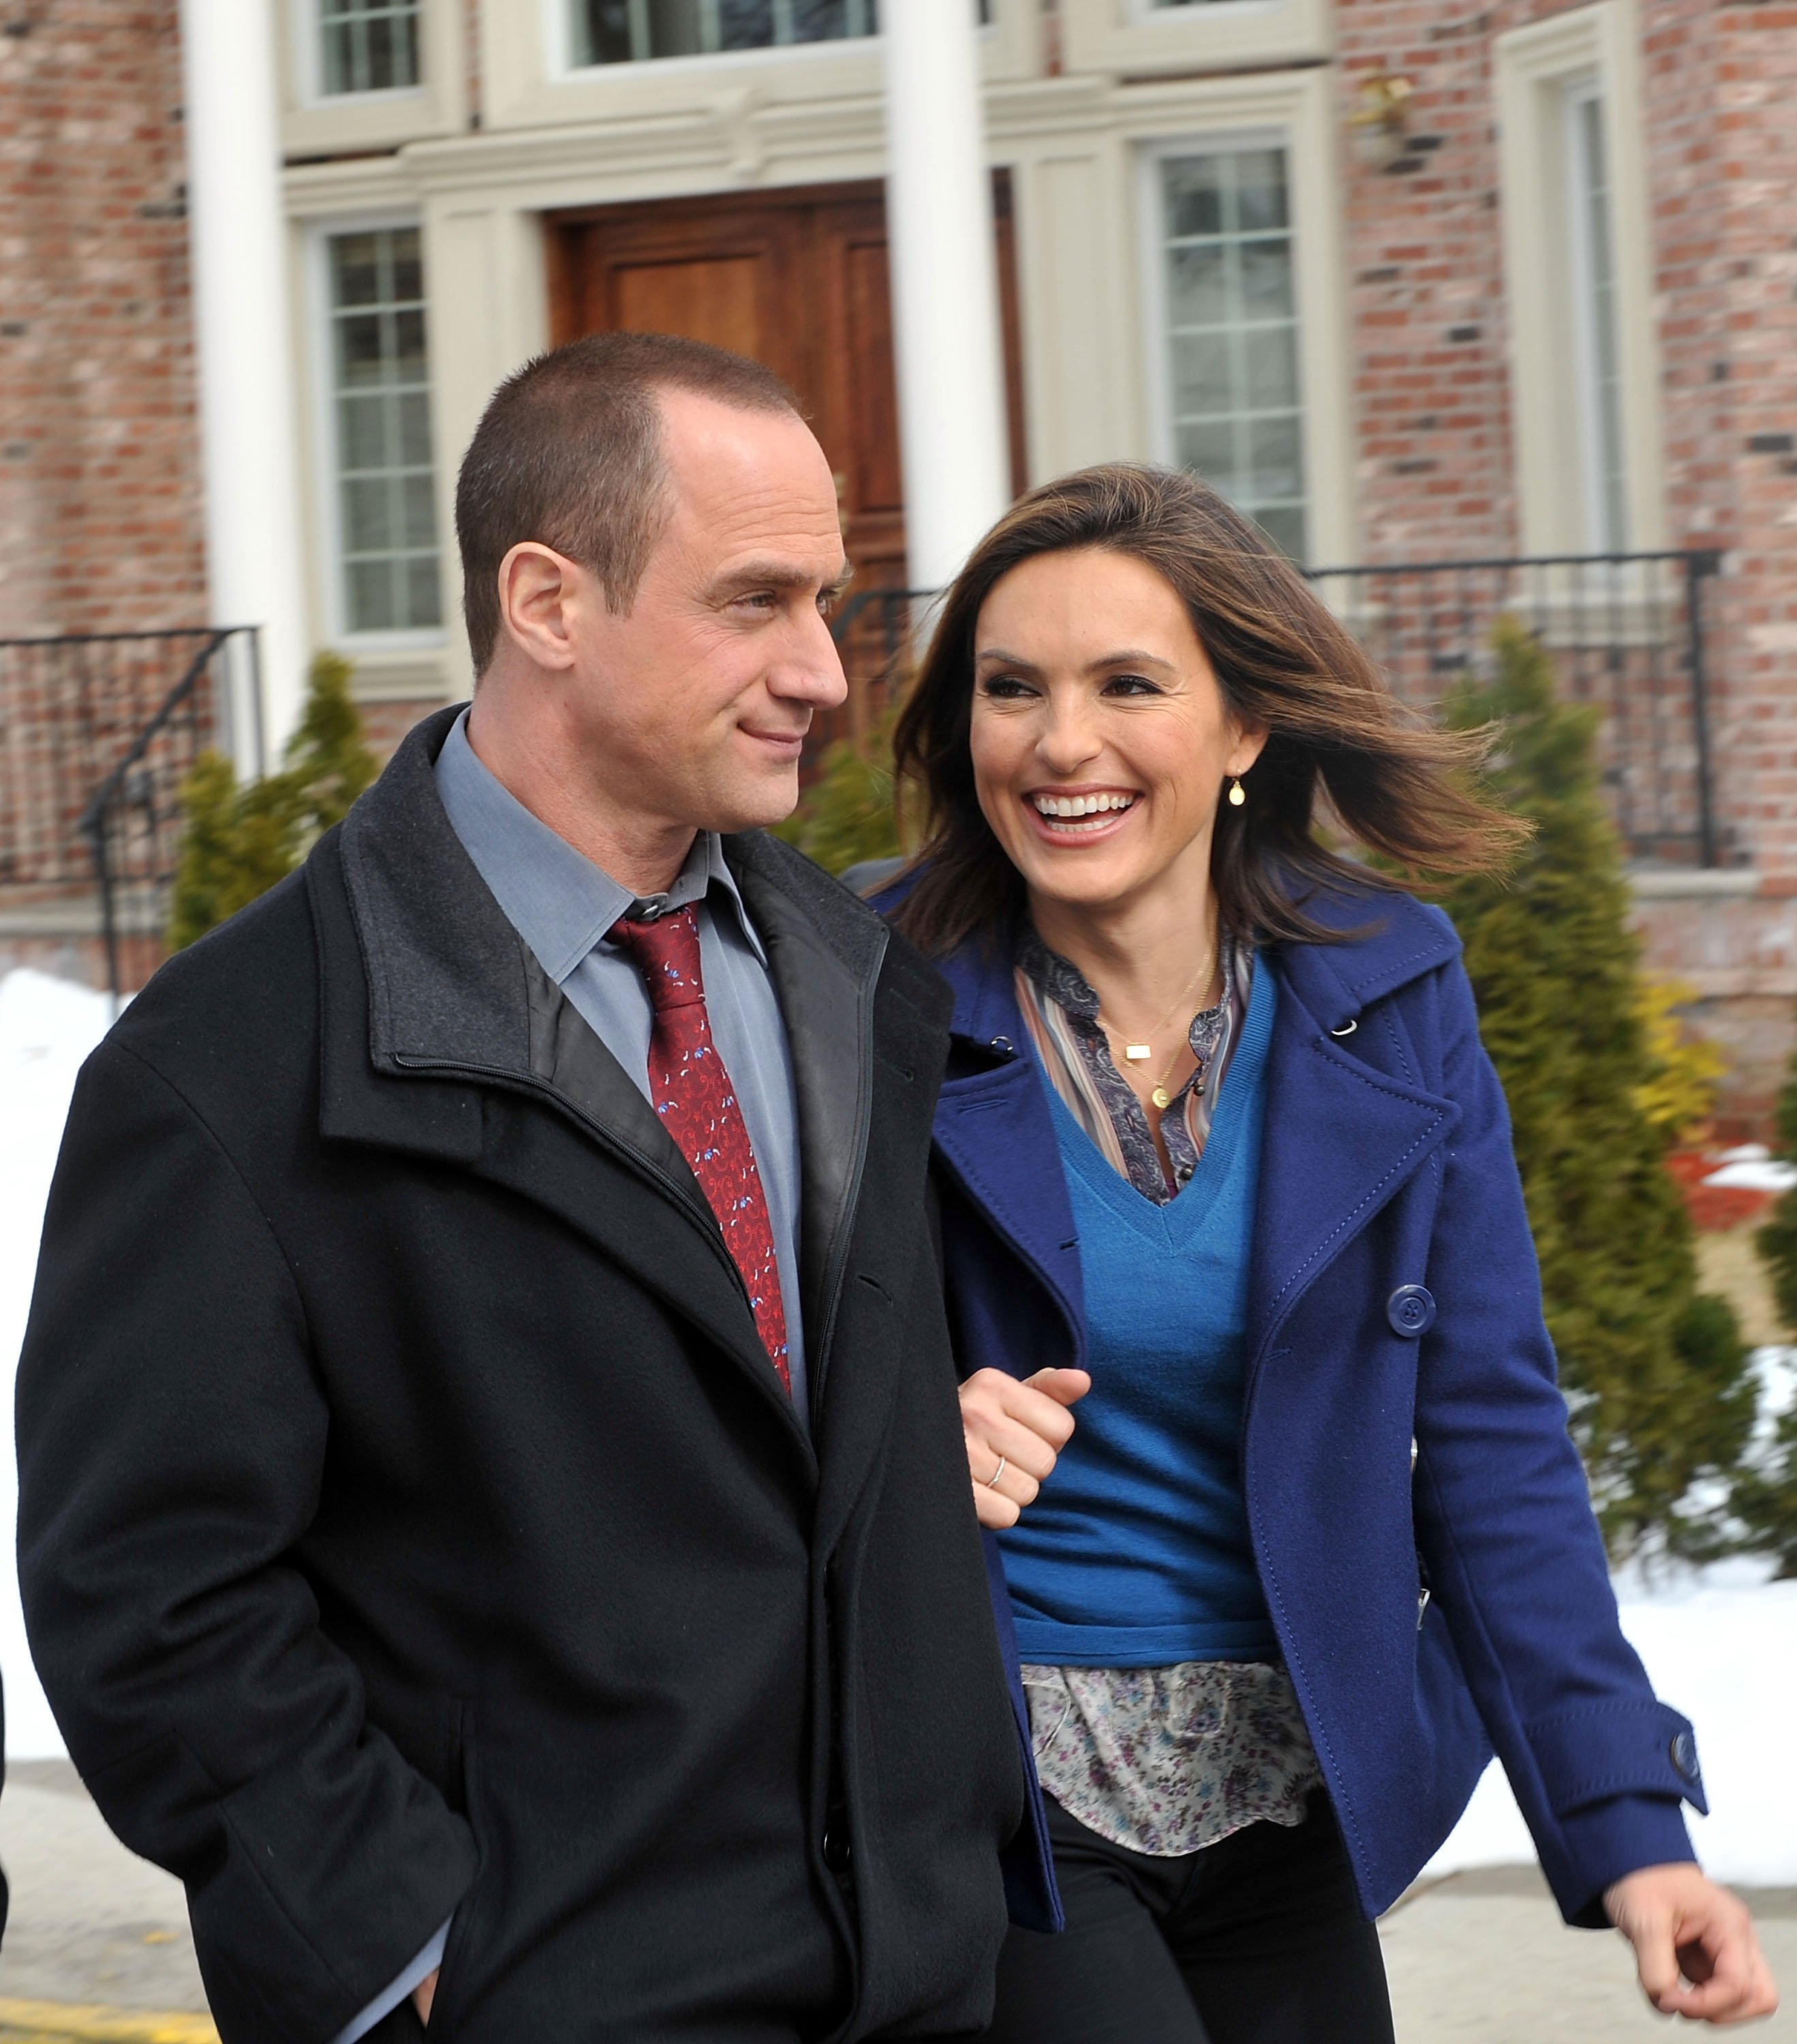 Christopher Meloni and Mariska Hargitay co-starred in Law & Order: SVU. | Photo: Getty Images.